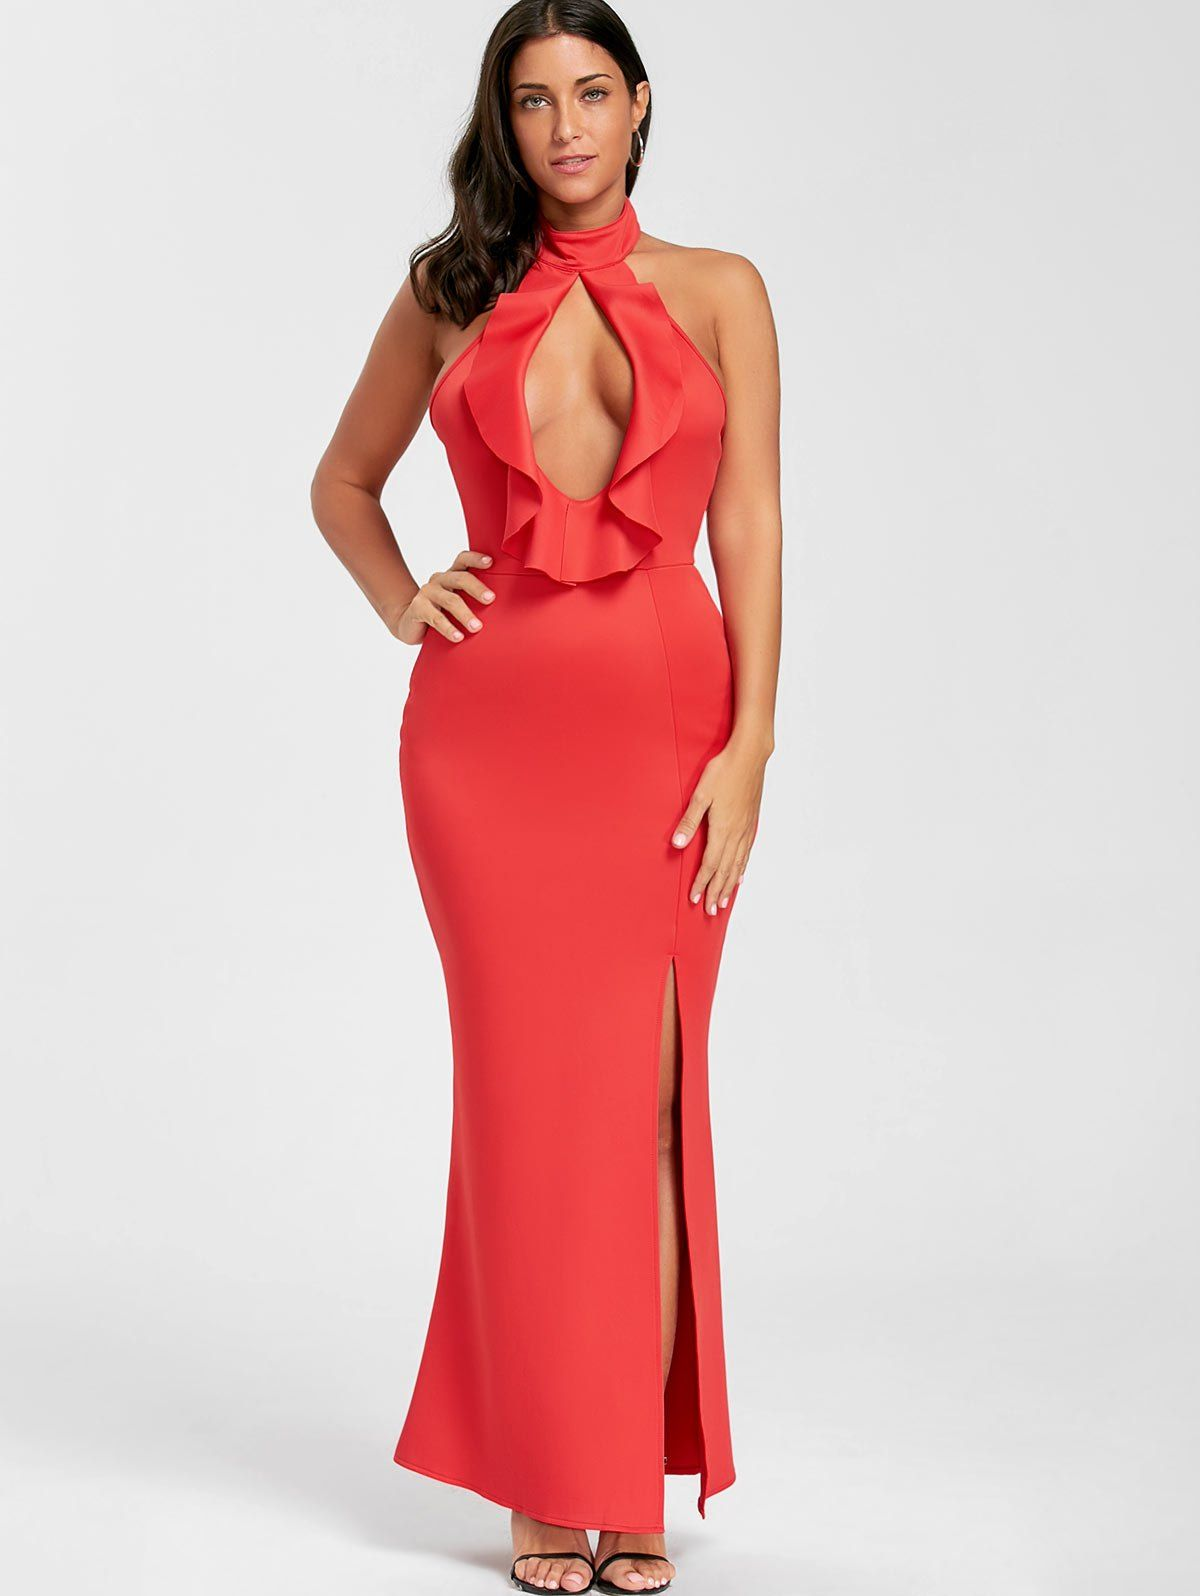 Ruffle cut out halter prom dress ruffles prom and maxi dresses